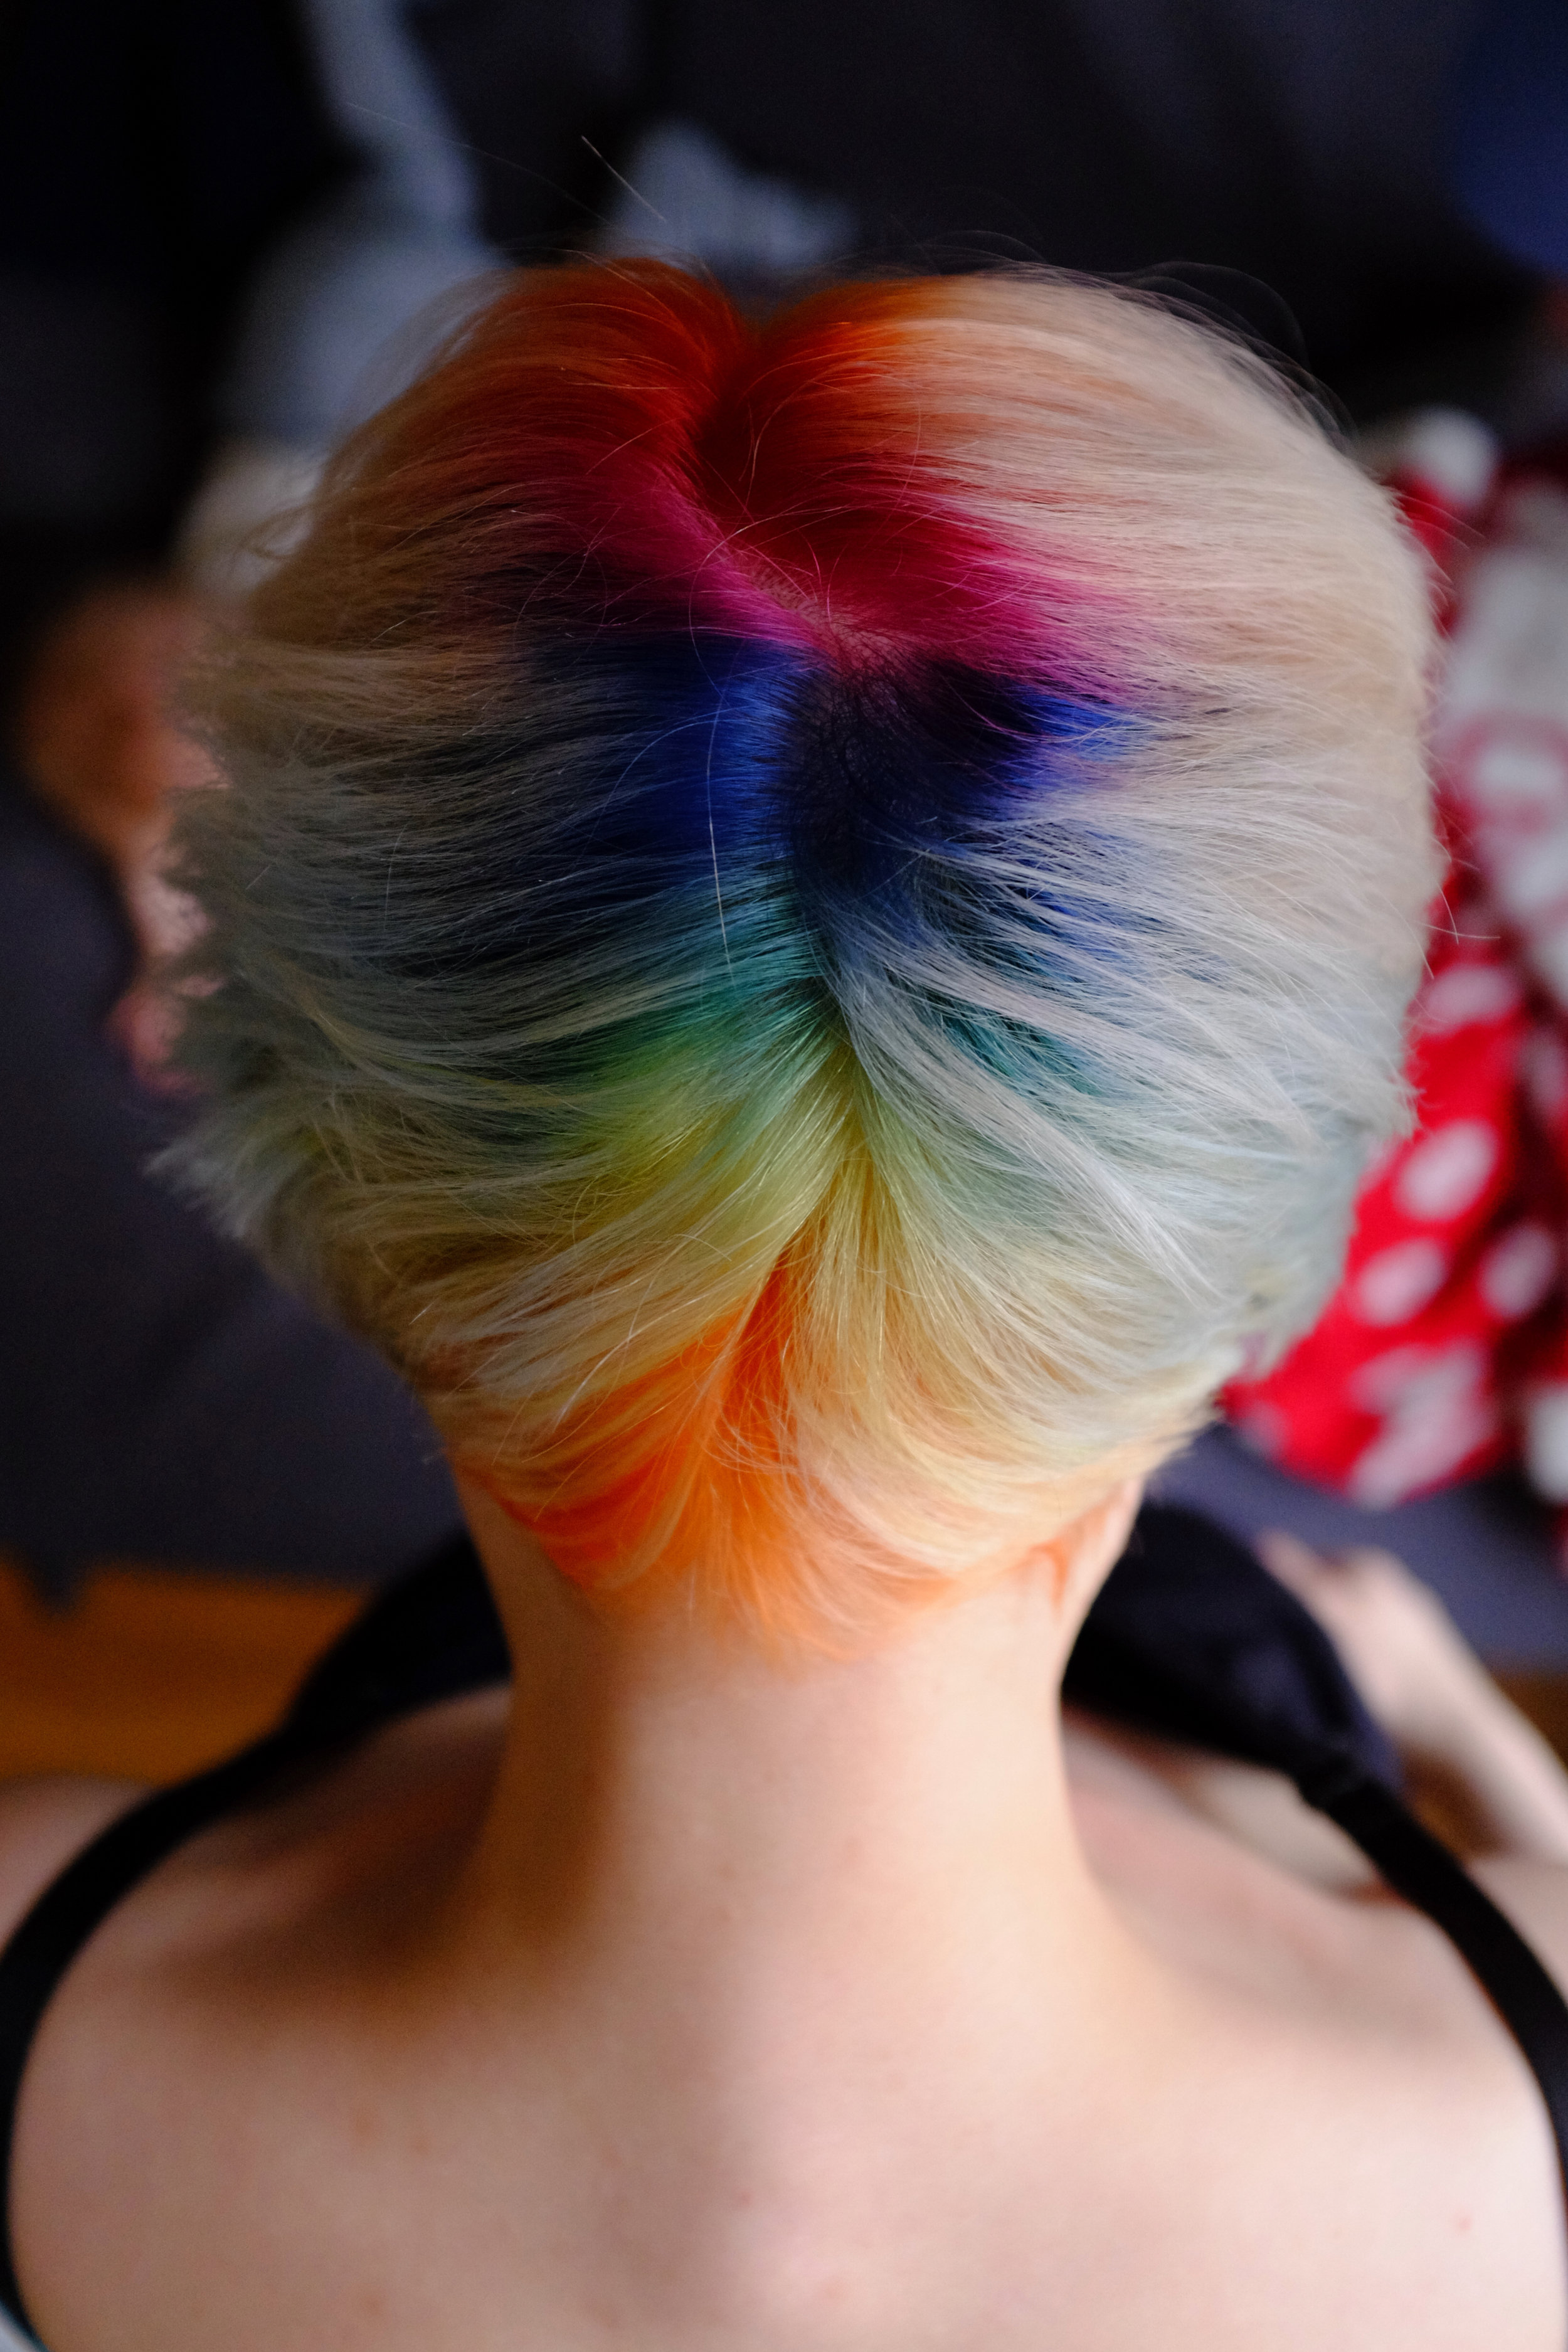 Colourful haircut rendered perfectly directly from the camera